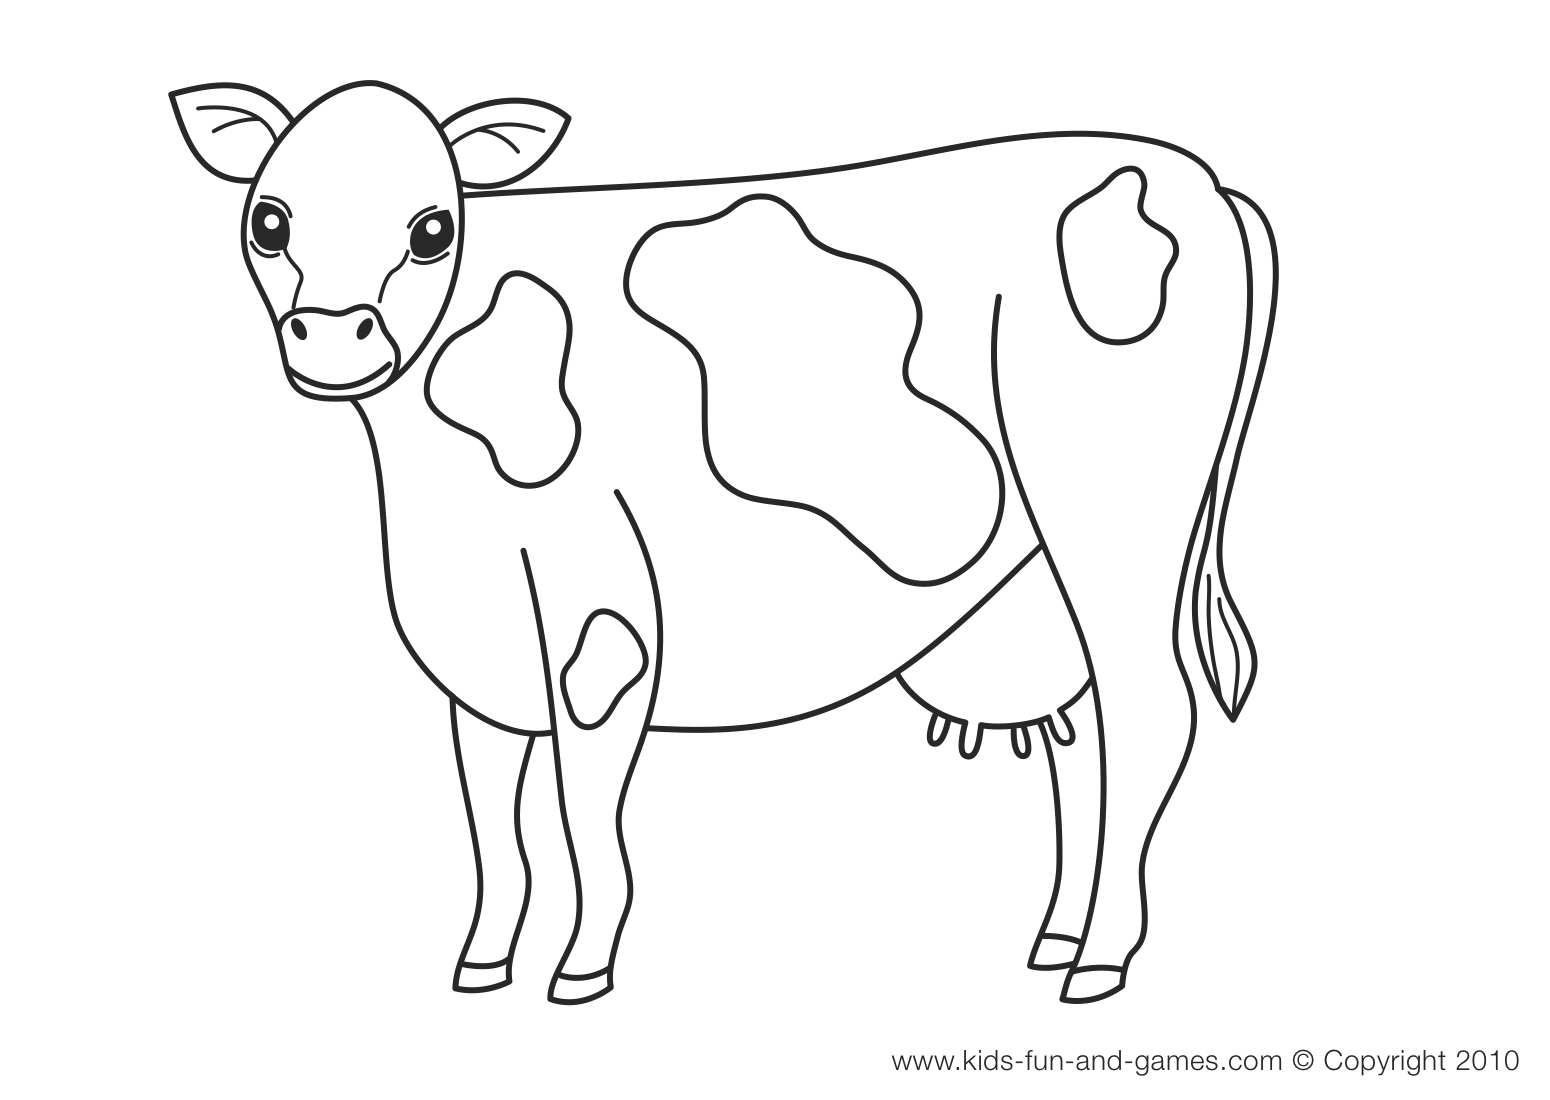 1550x1100 Coloring Pages For Girls Baby Cow To Funny Draw Pict Printable